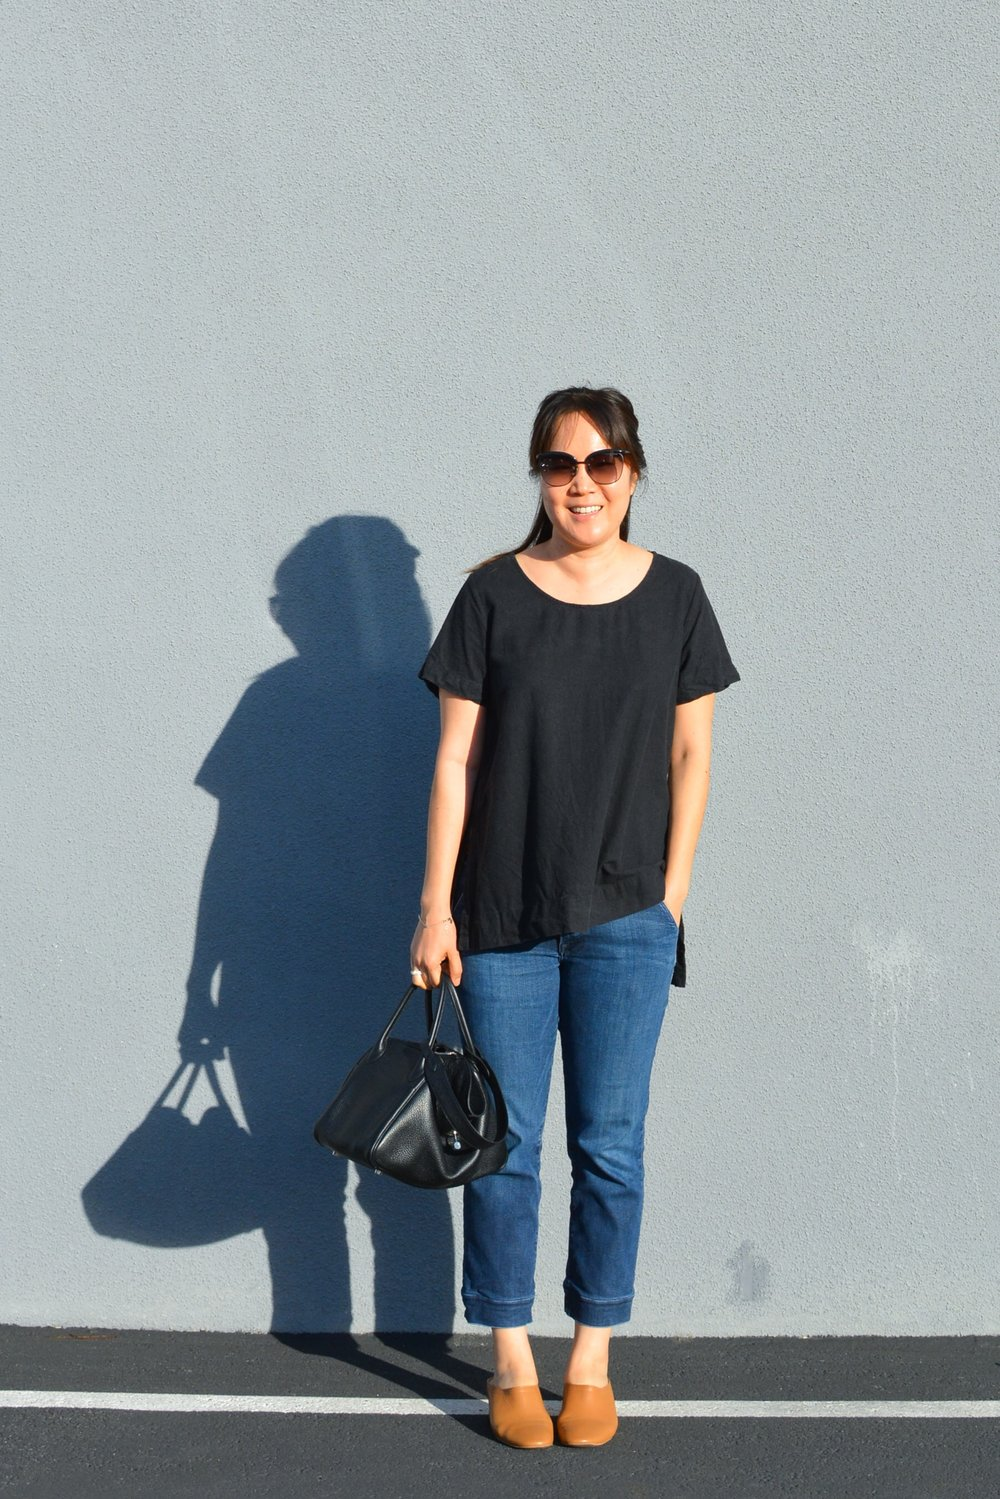 Jamie and the Jones Review The Stable Basic Split Tee Top  (1 of 6)-min.jpg